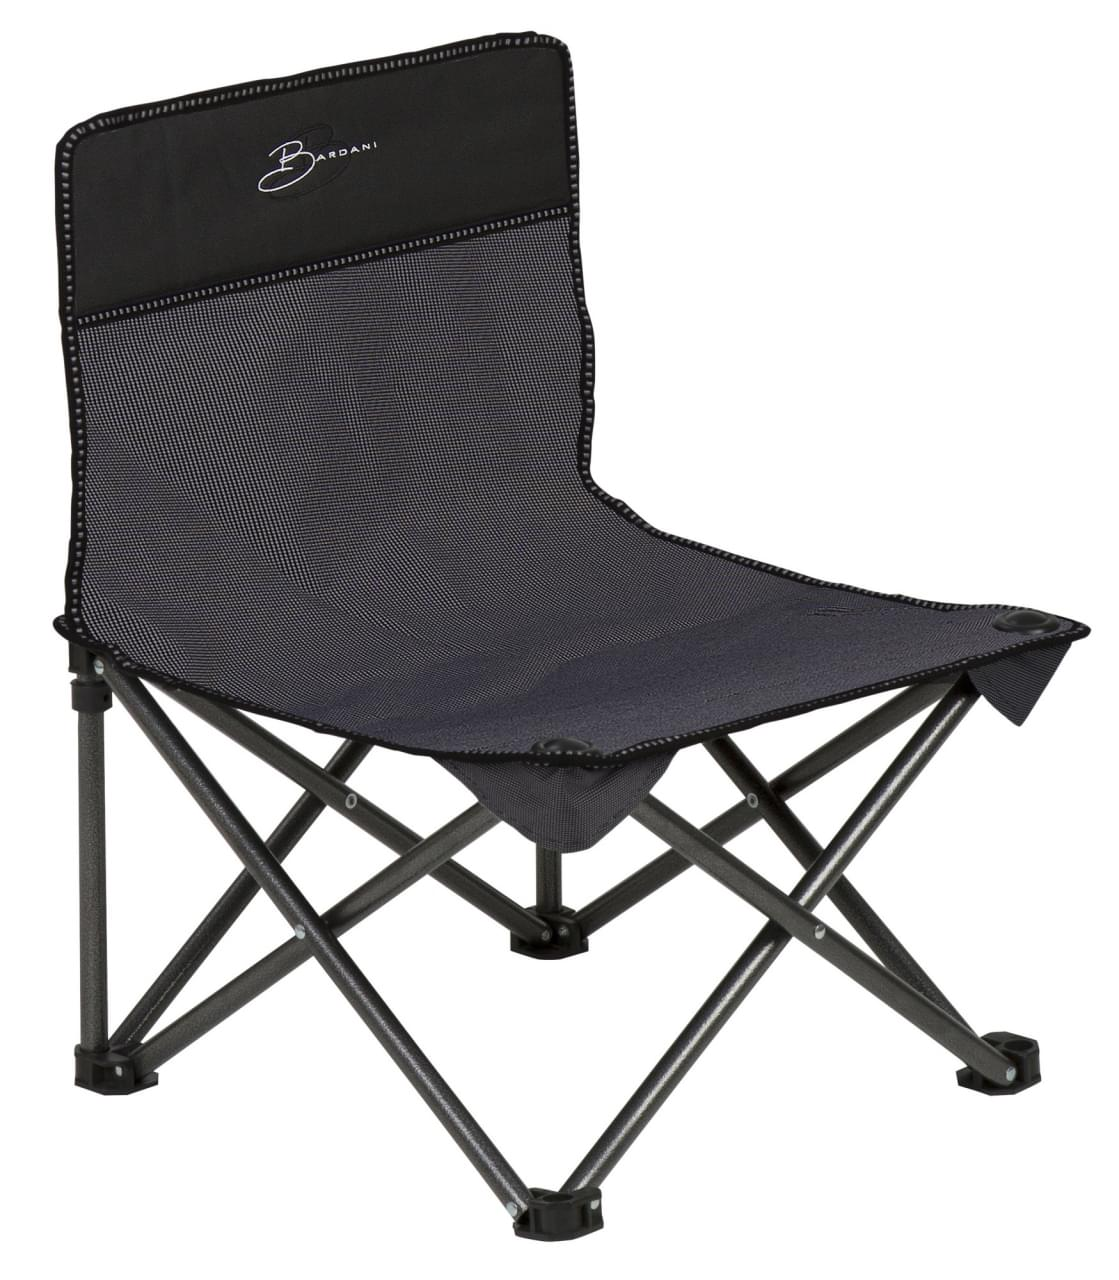 Bardani Elite Low Adult Campingstoel Grijs